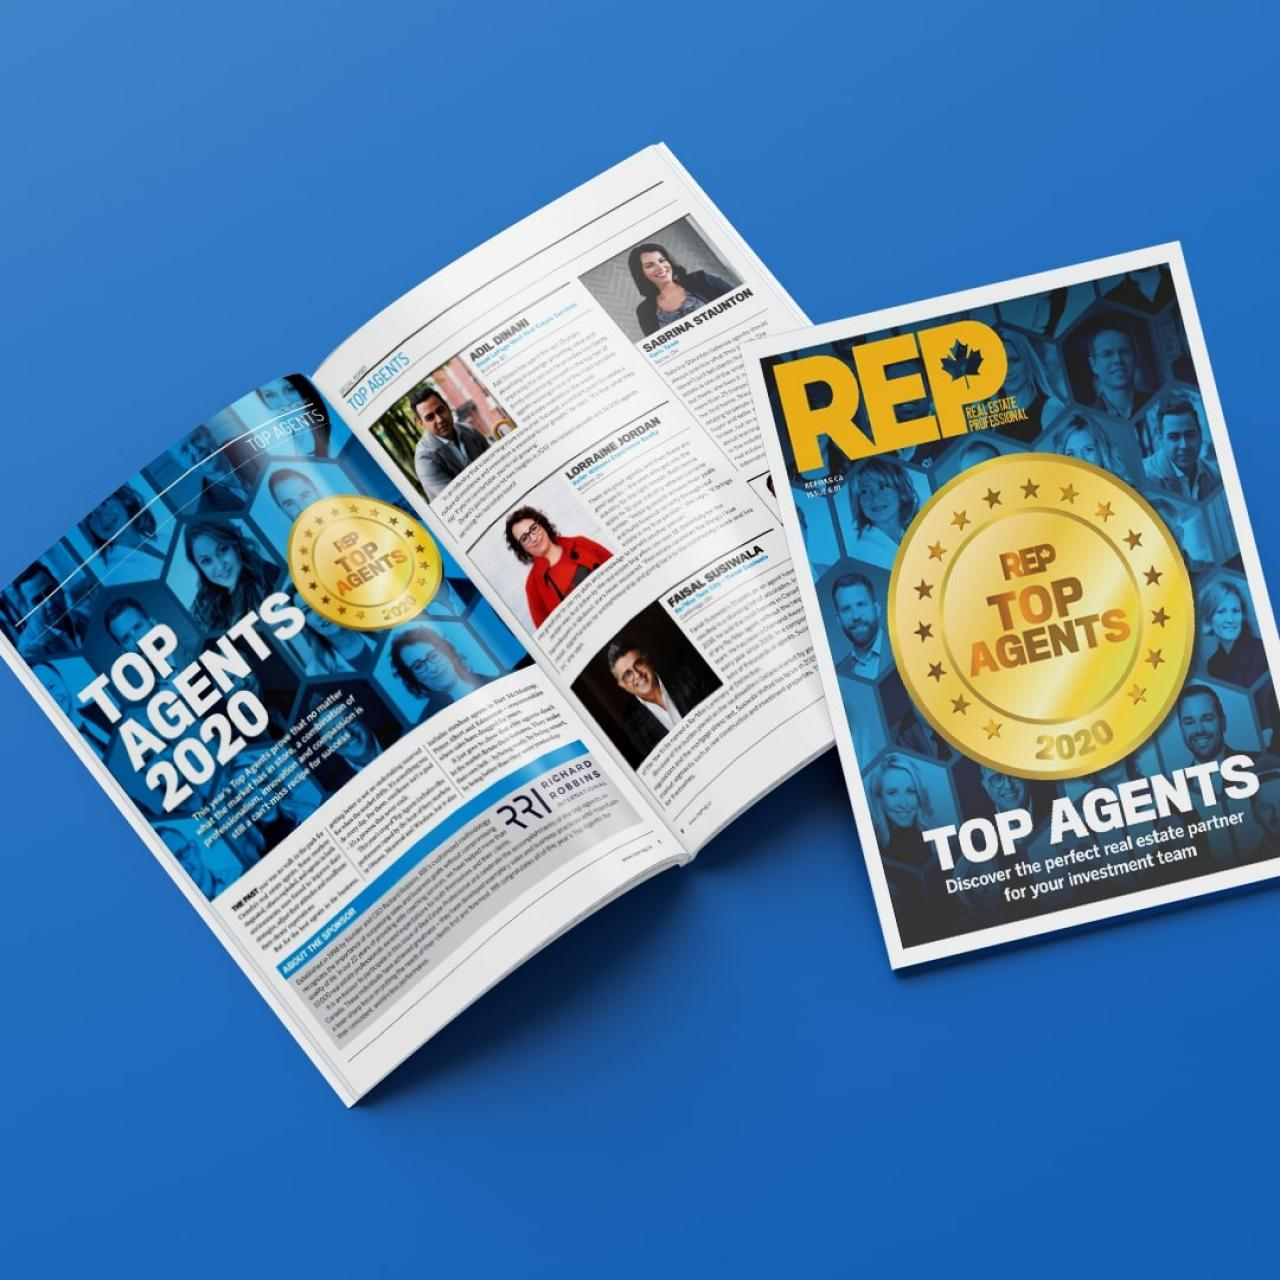 REP Magazine: Adil is featured as one of the top agents in the country, April 5, 2020